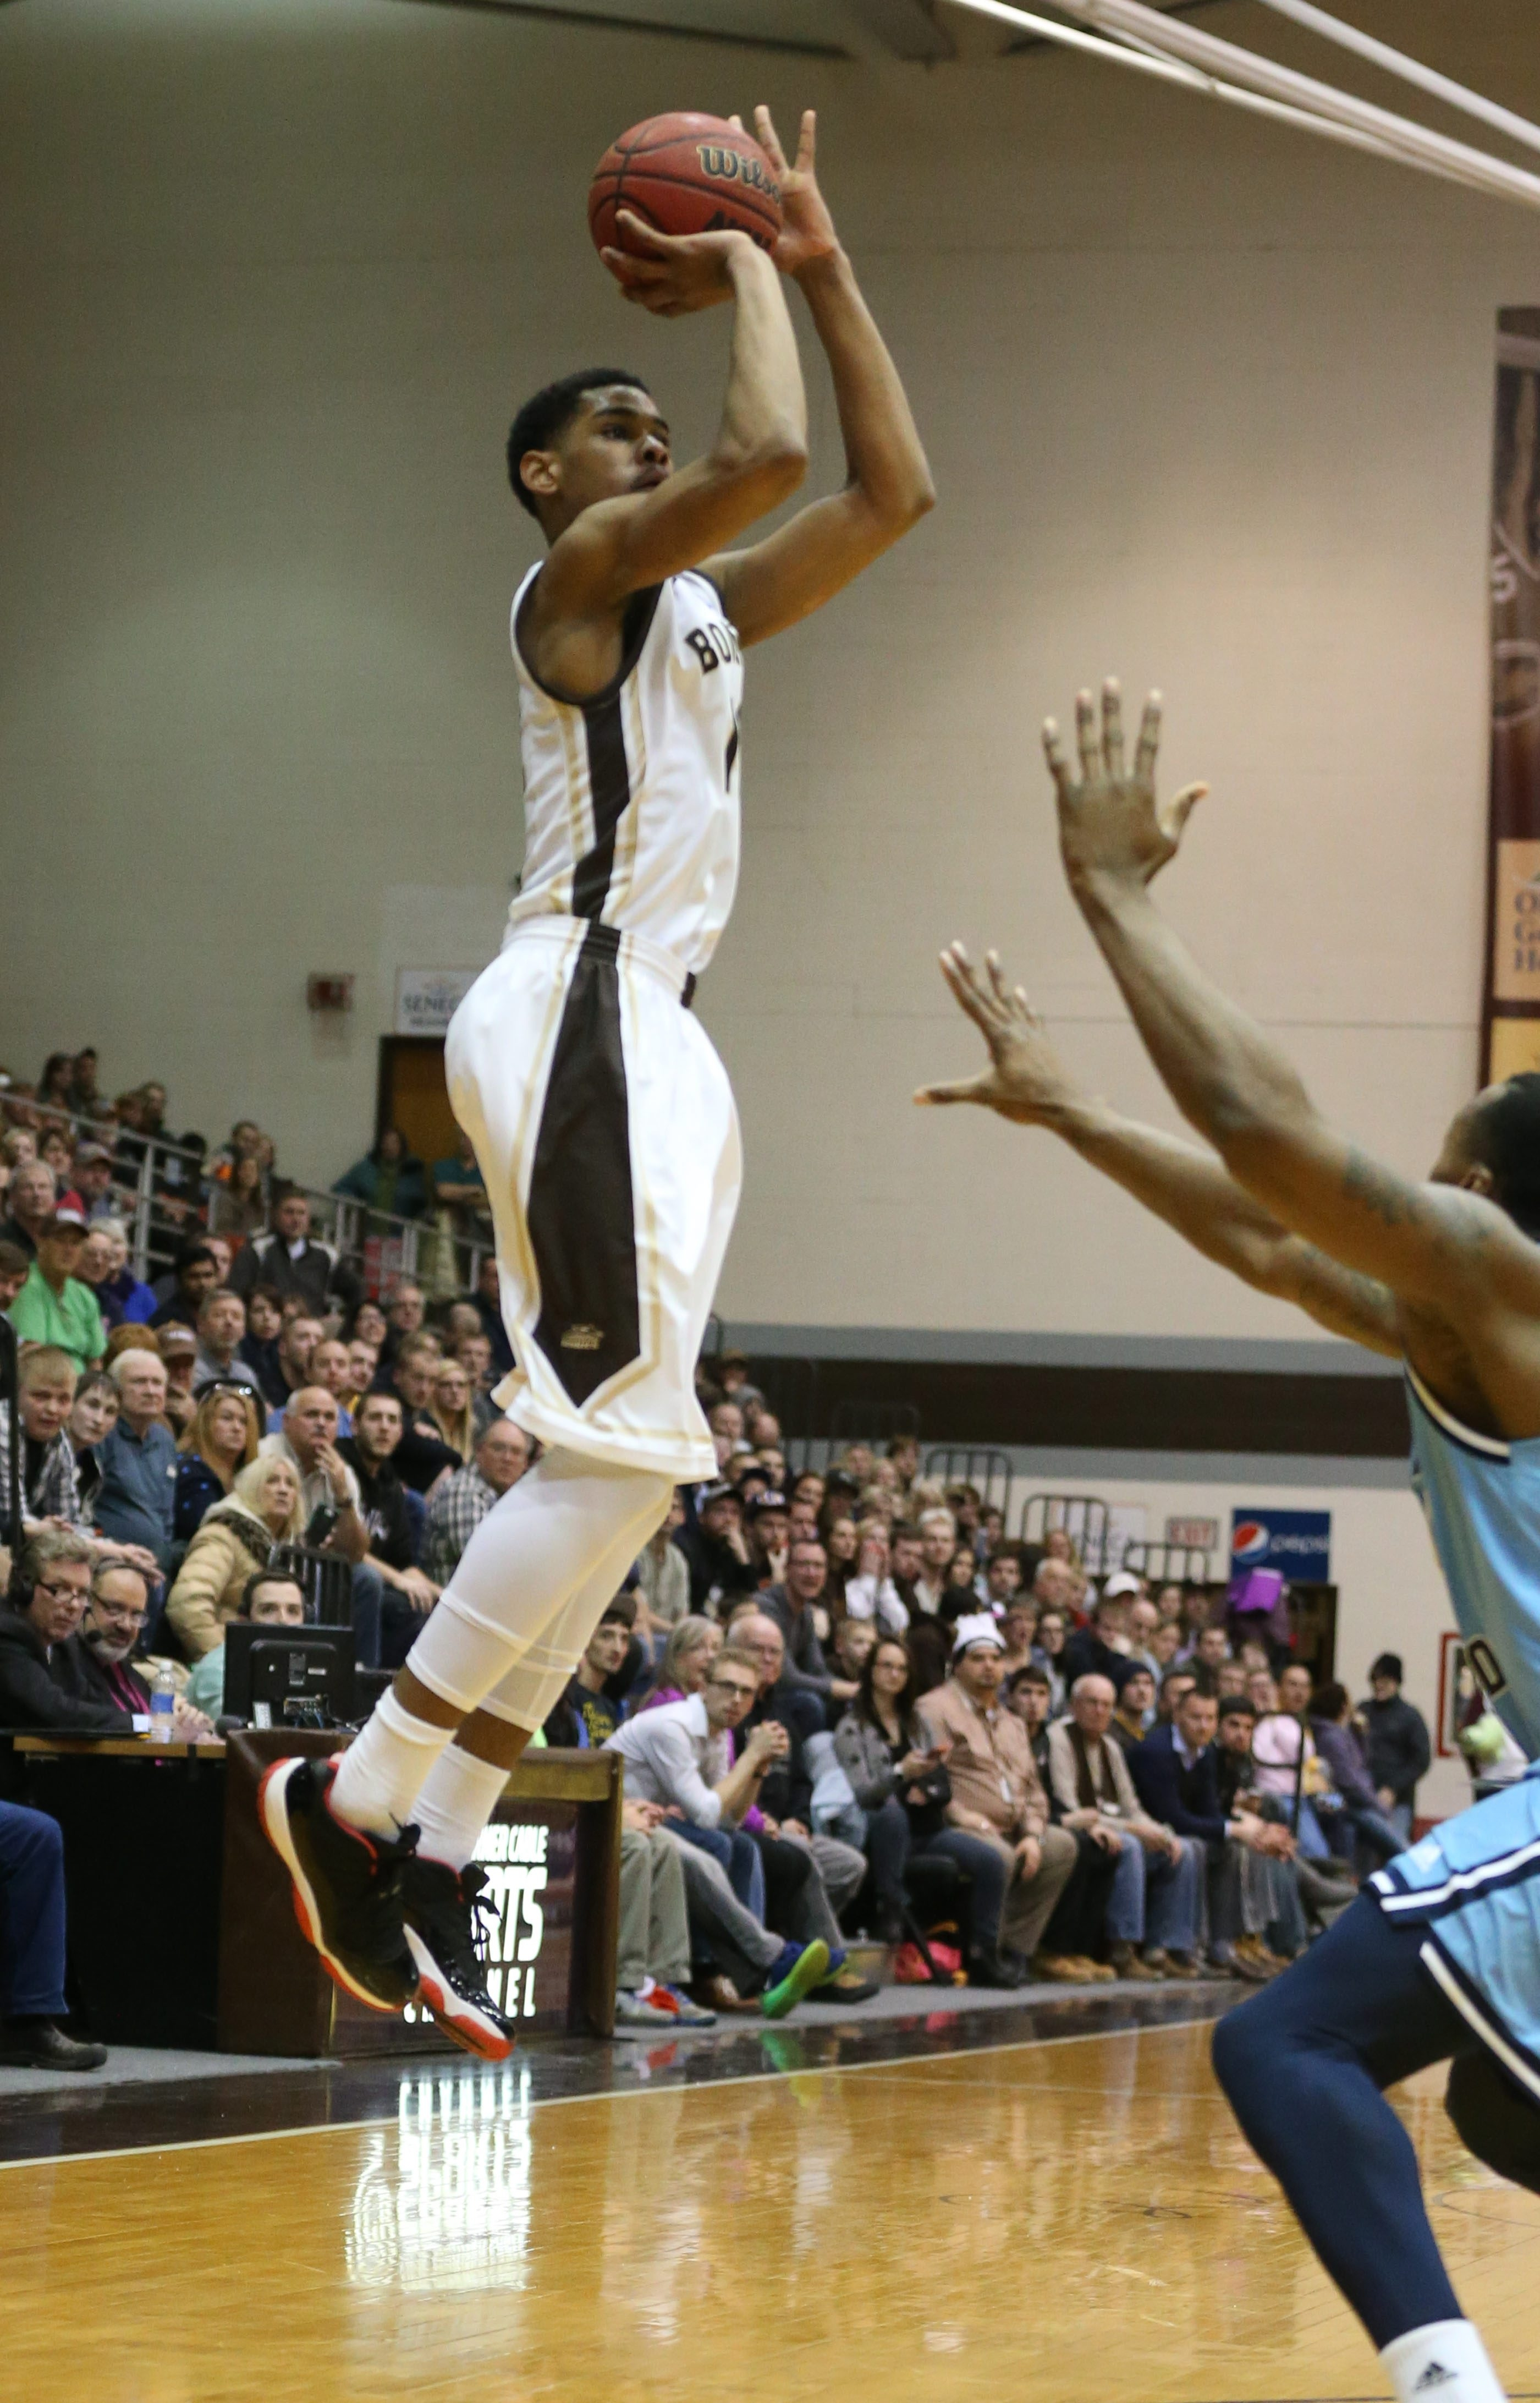 St. Bonaventure's Denzel Gregg hits a three-point shot with 1:35 left in the second half, giving the Bonnies the lead for good against Rhode Island.